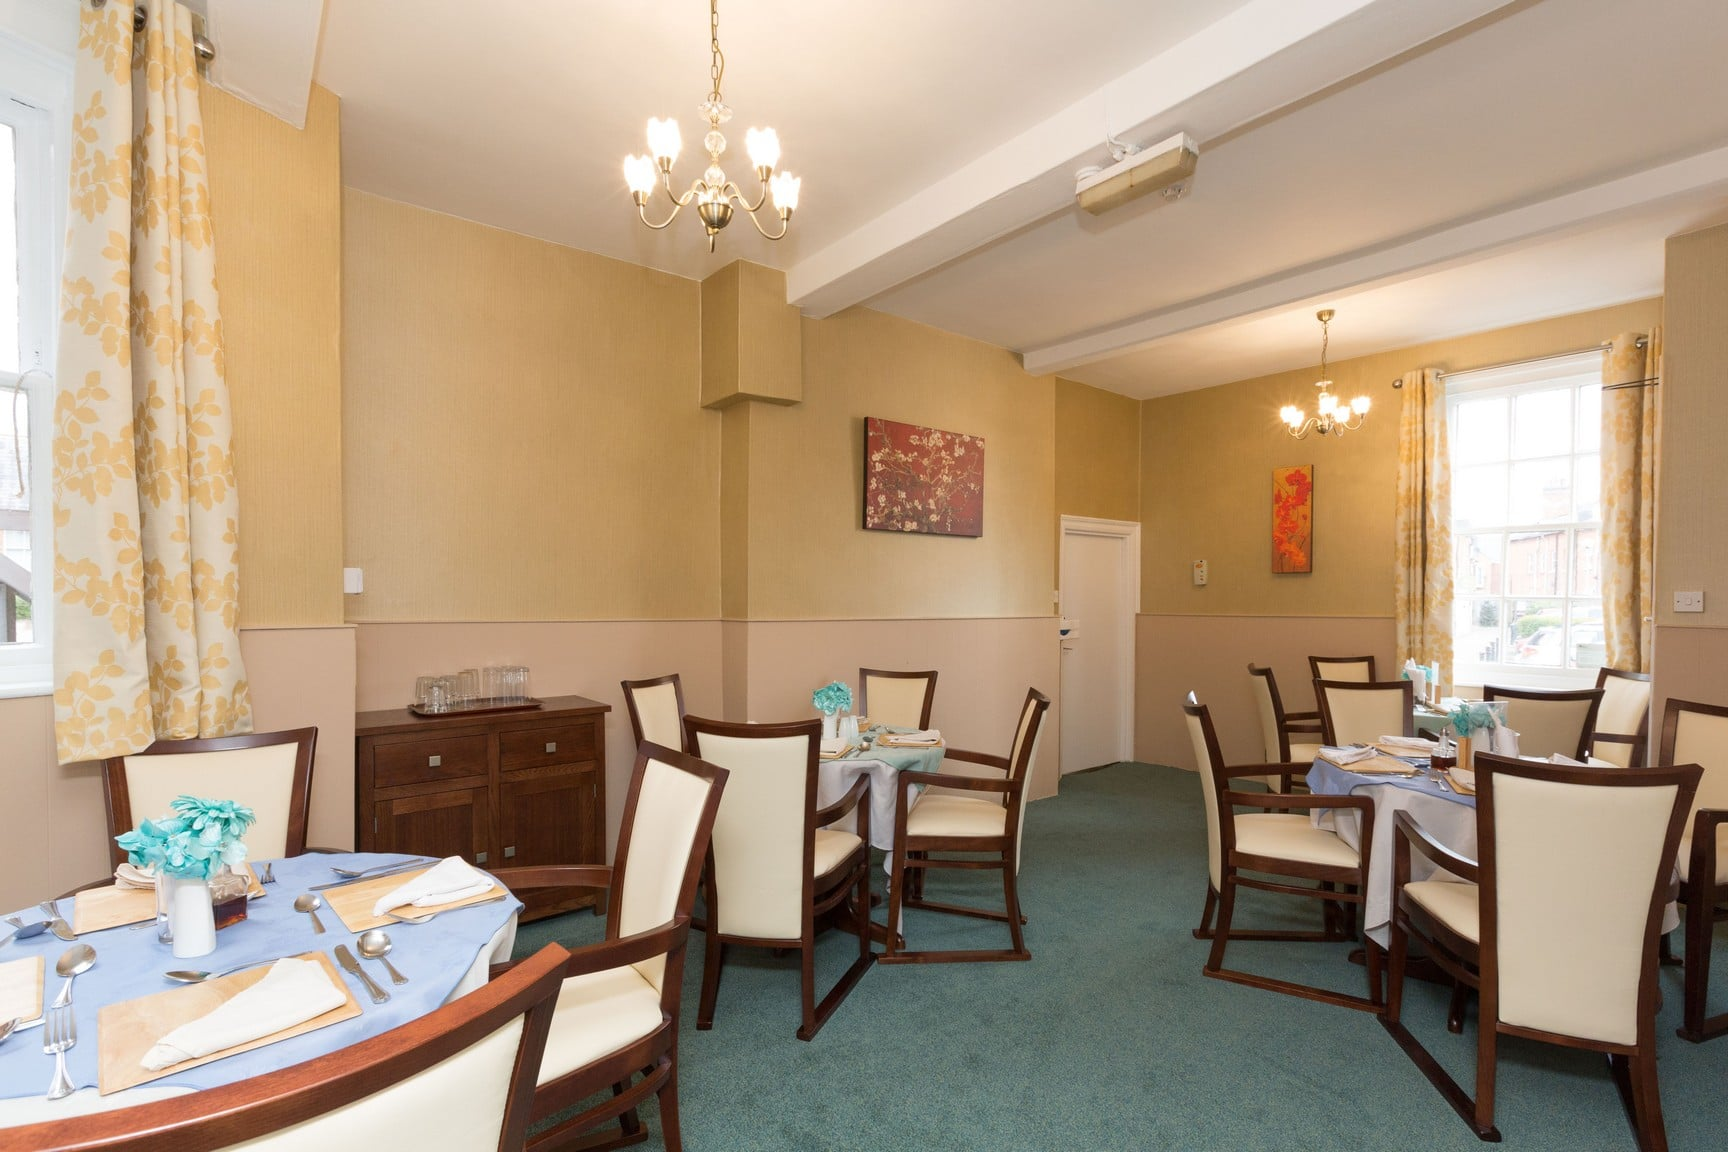 Weston House Care Home Whitchurch